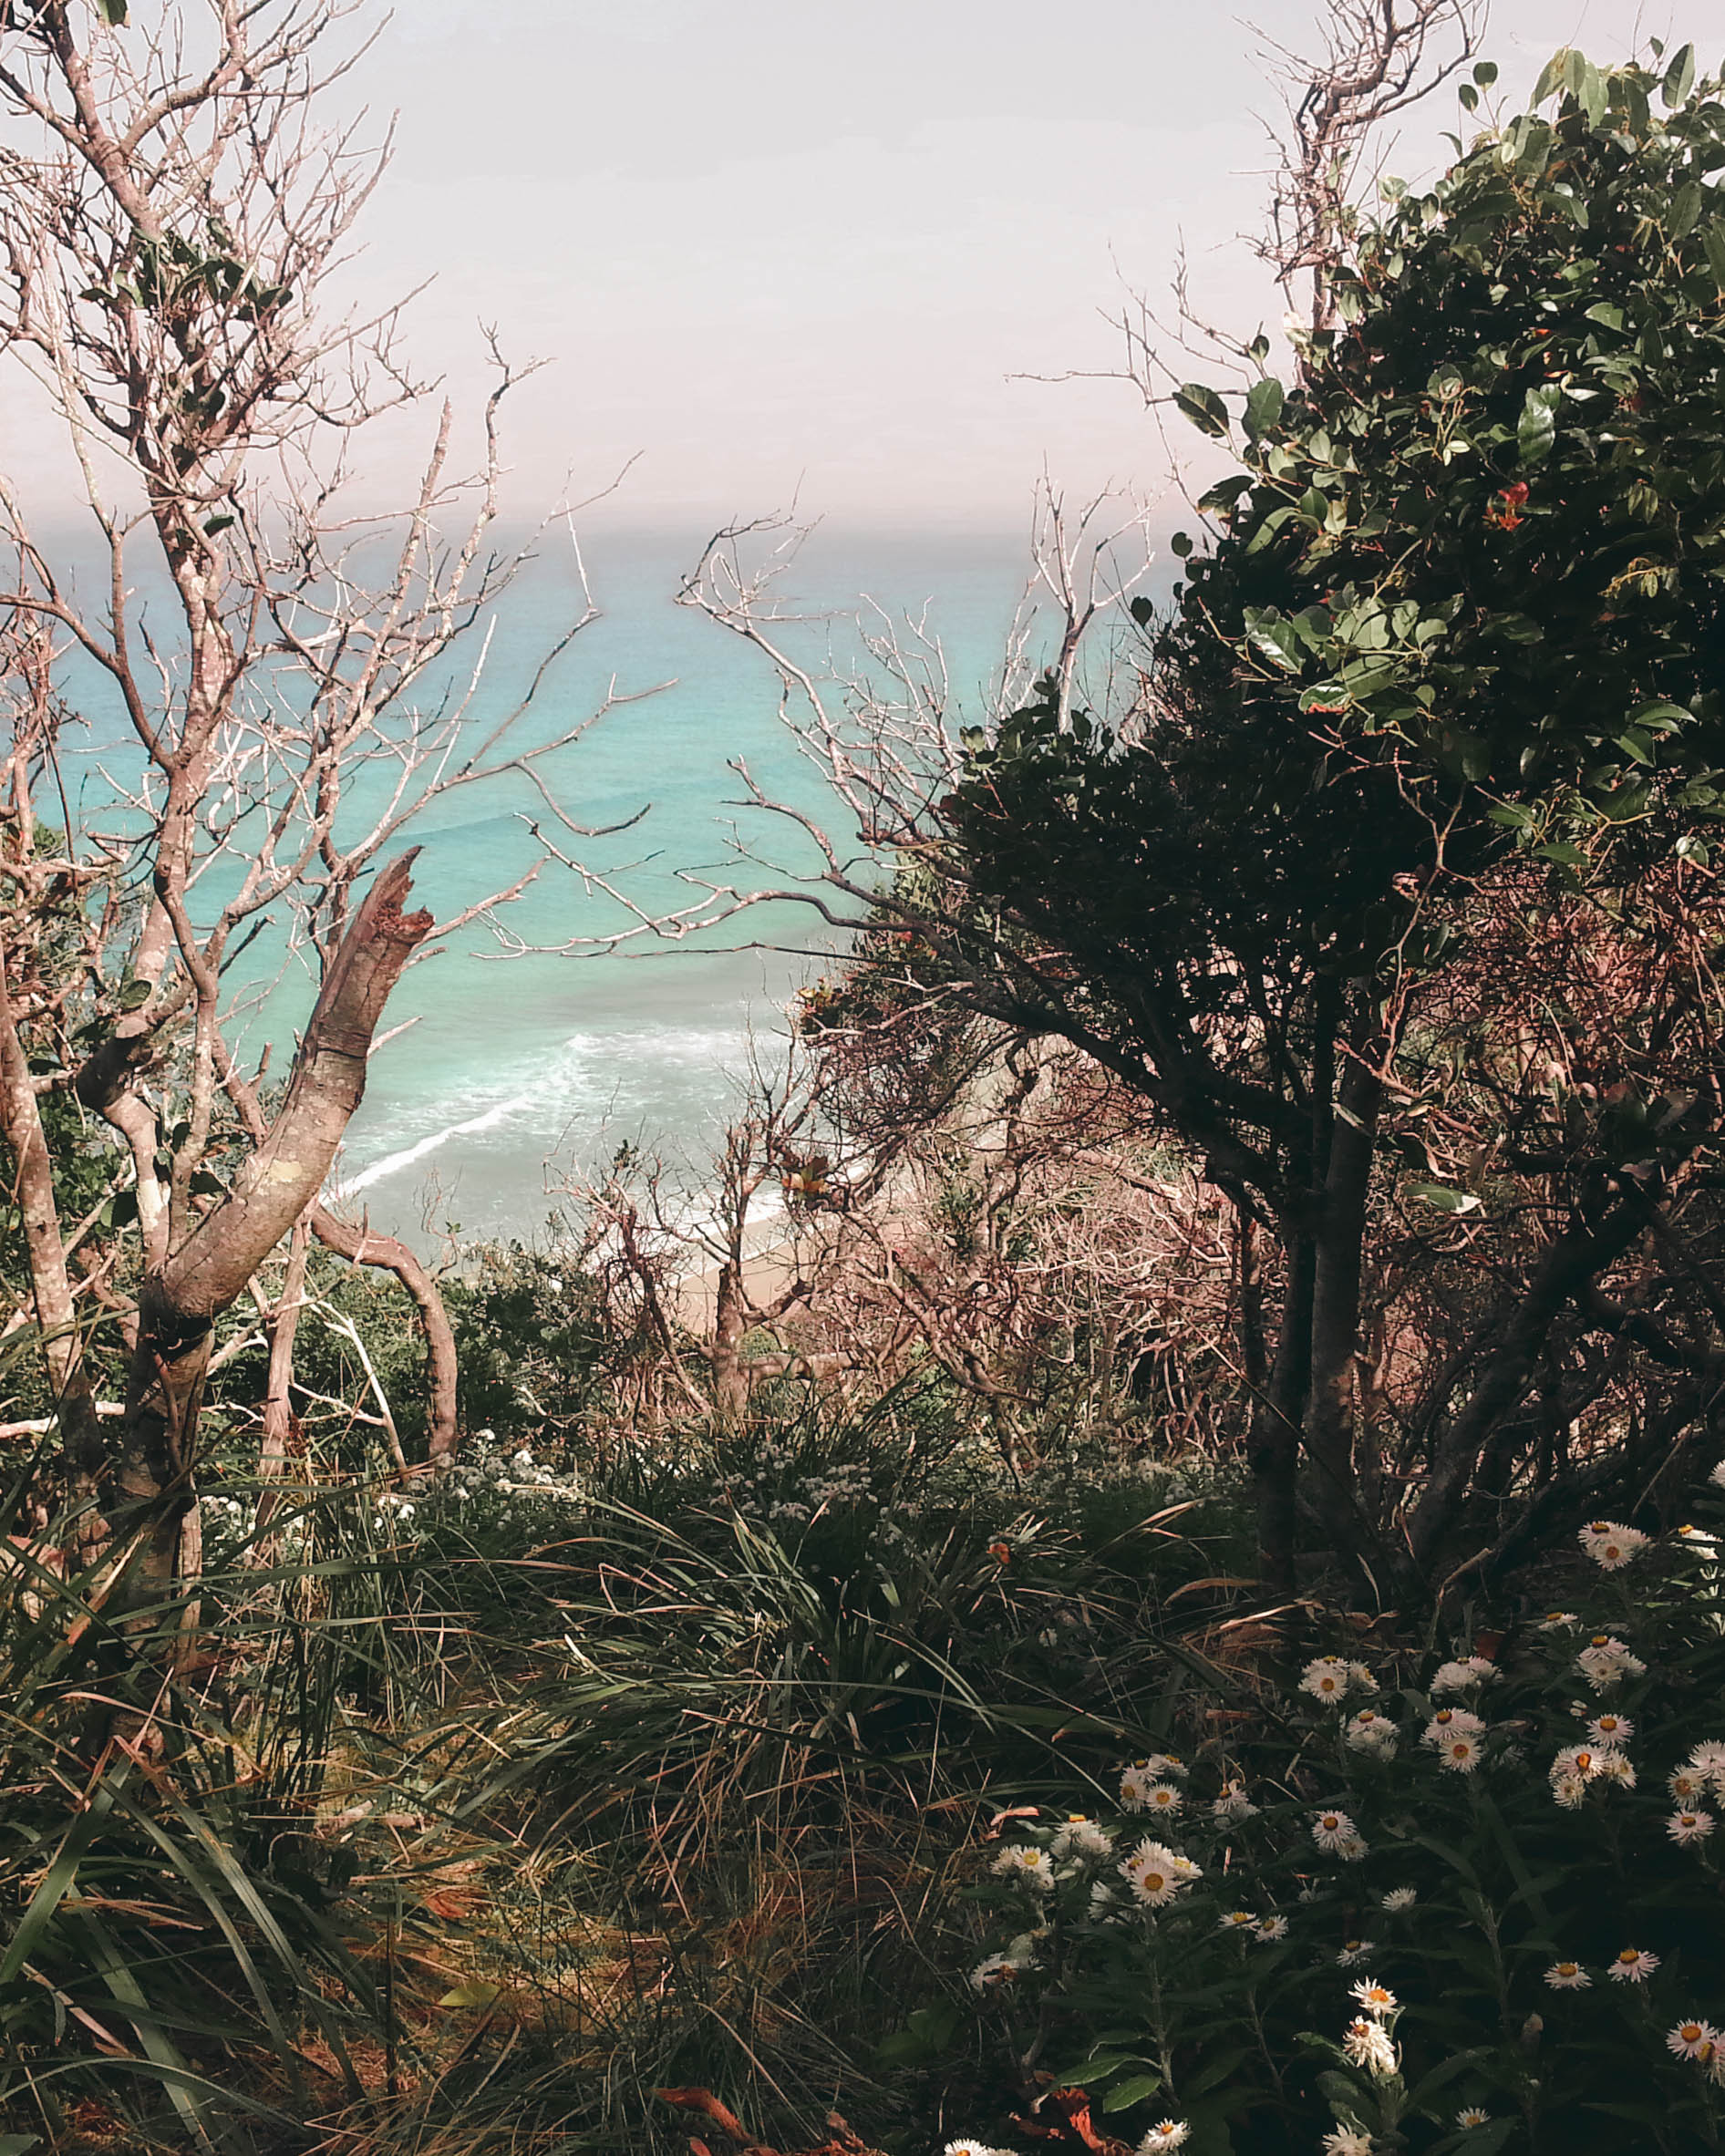 A glimpse of Whites Beach through a rain forest thicket of trees and wildflowers